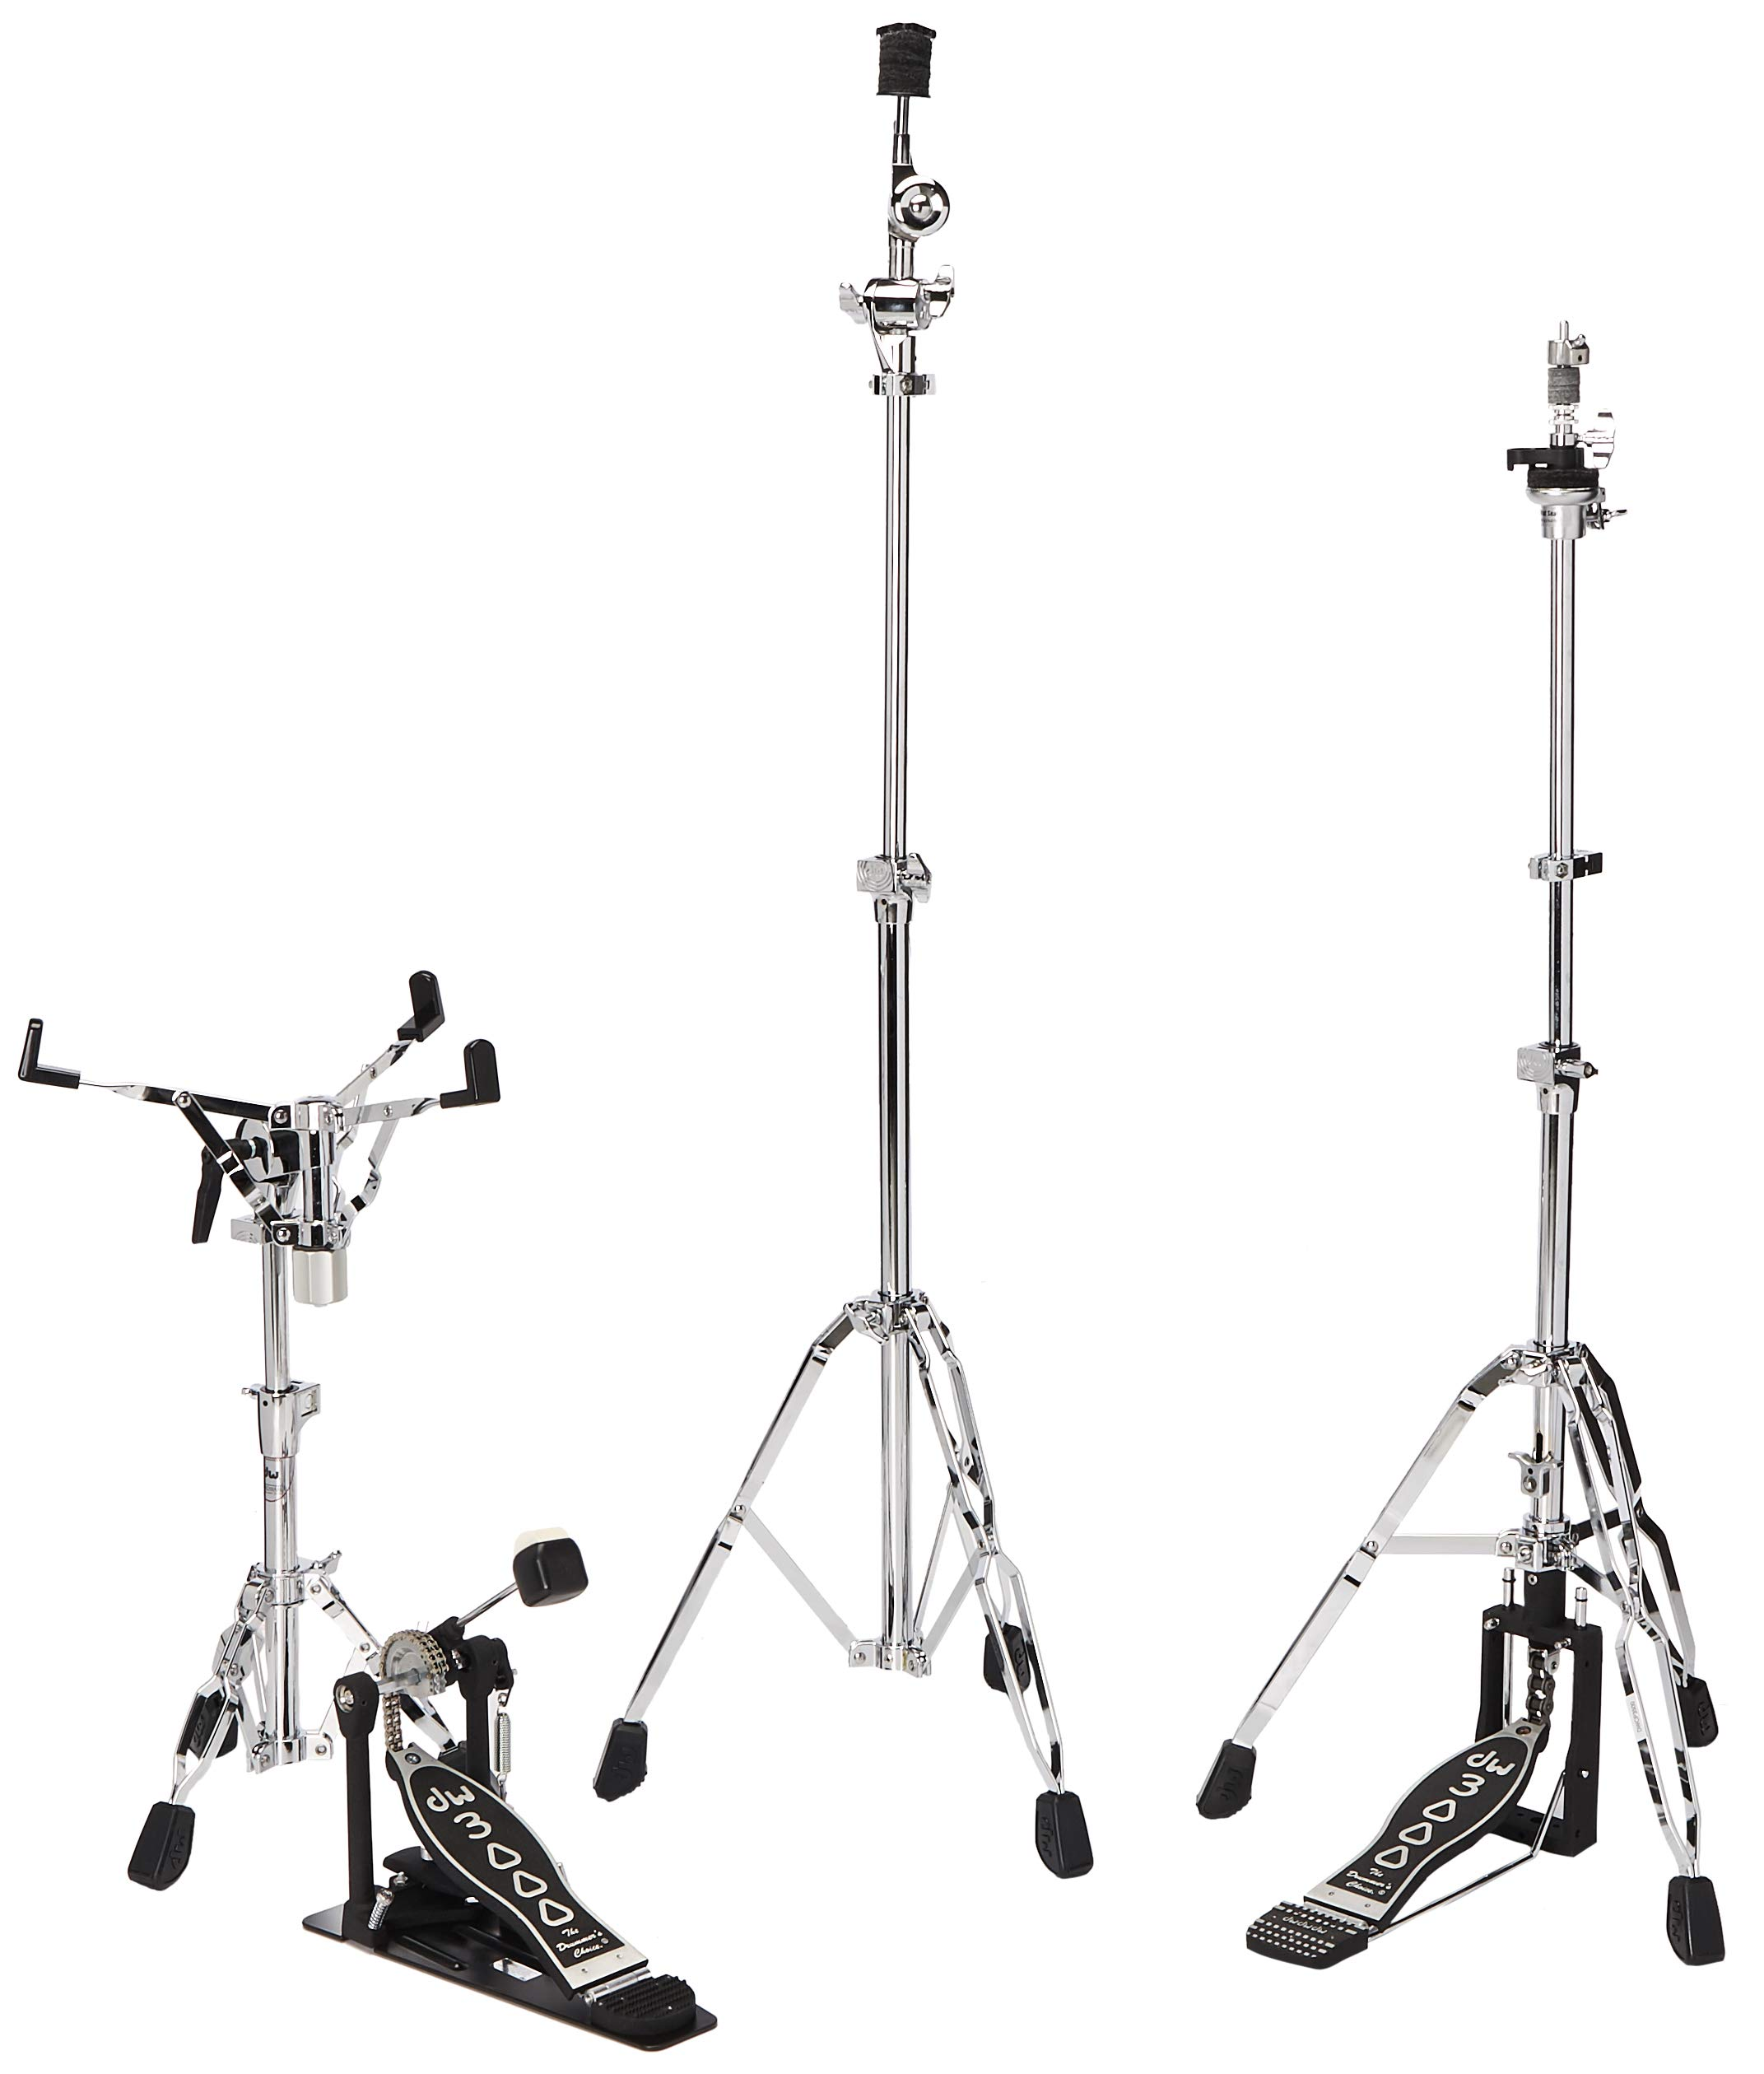 DW DWCP3000PK Drumset Hardware Pack with 3300 Snare Drum Stand, 3500 Hi-Hat Stand, 3700 Boom Cymbal Stand and 3000 Single Bass Drum Pedal by DW